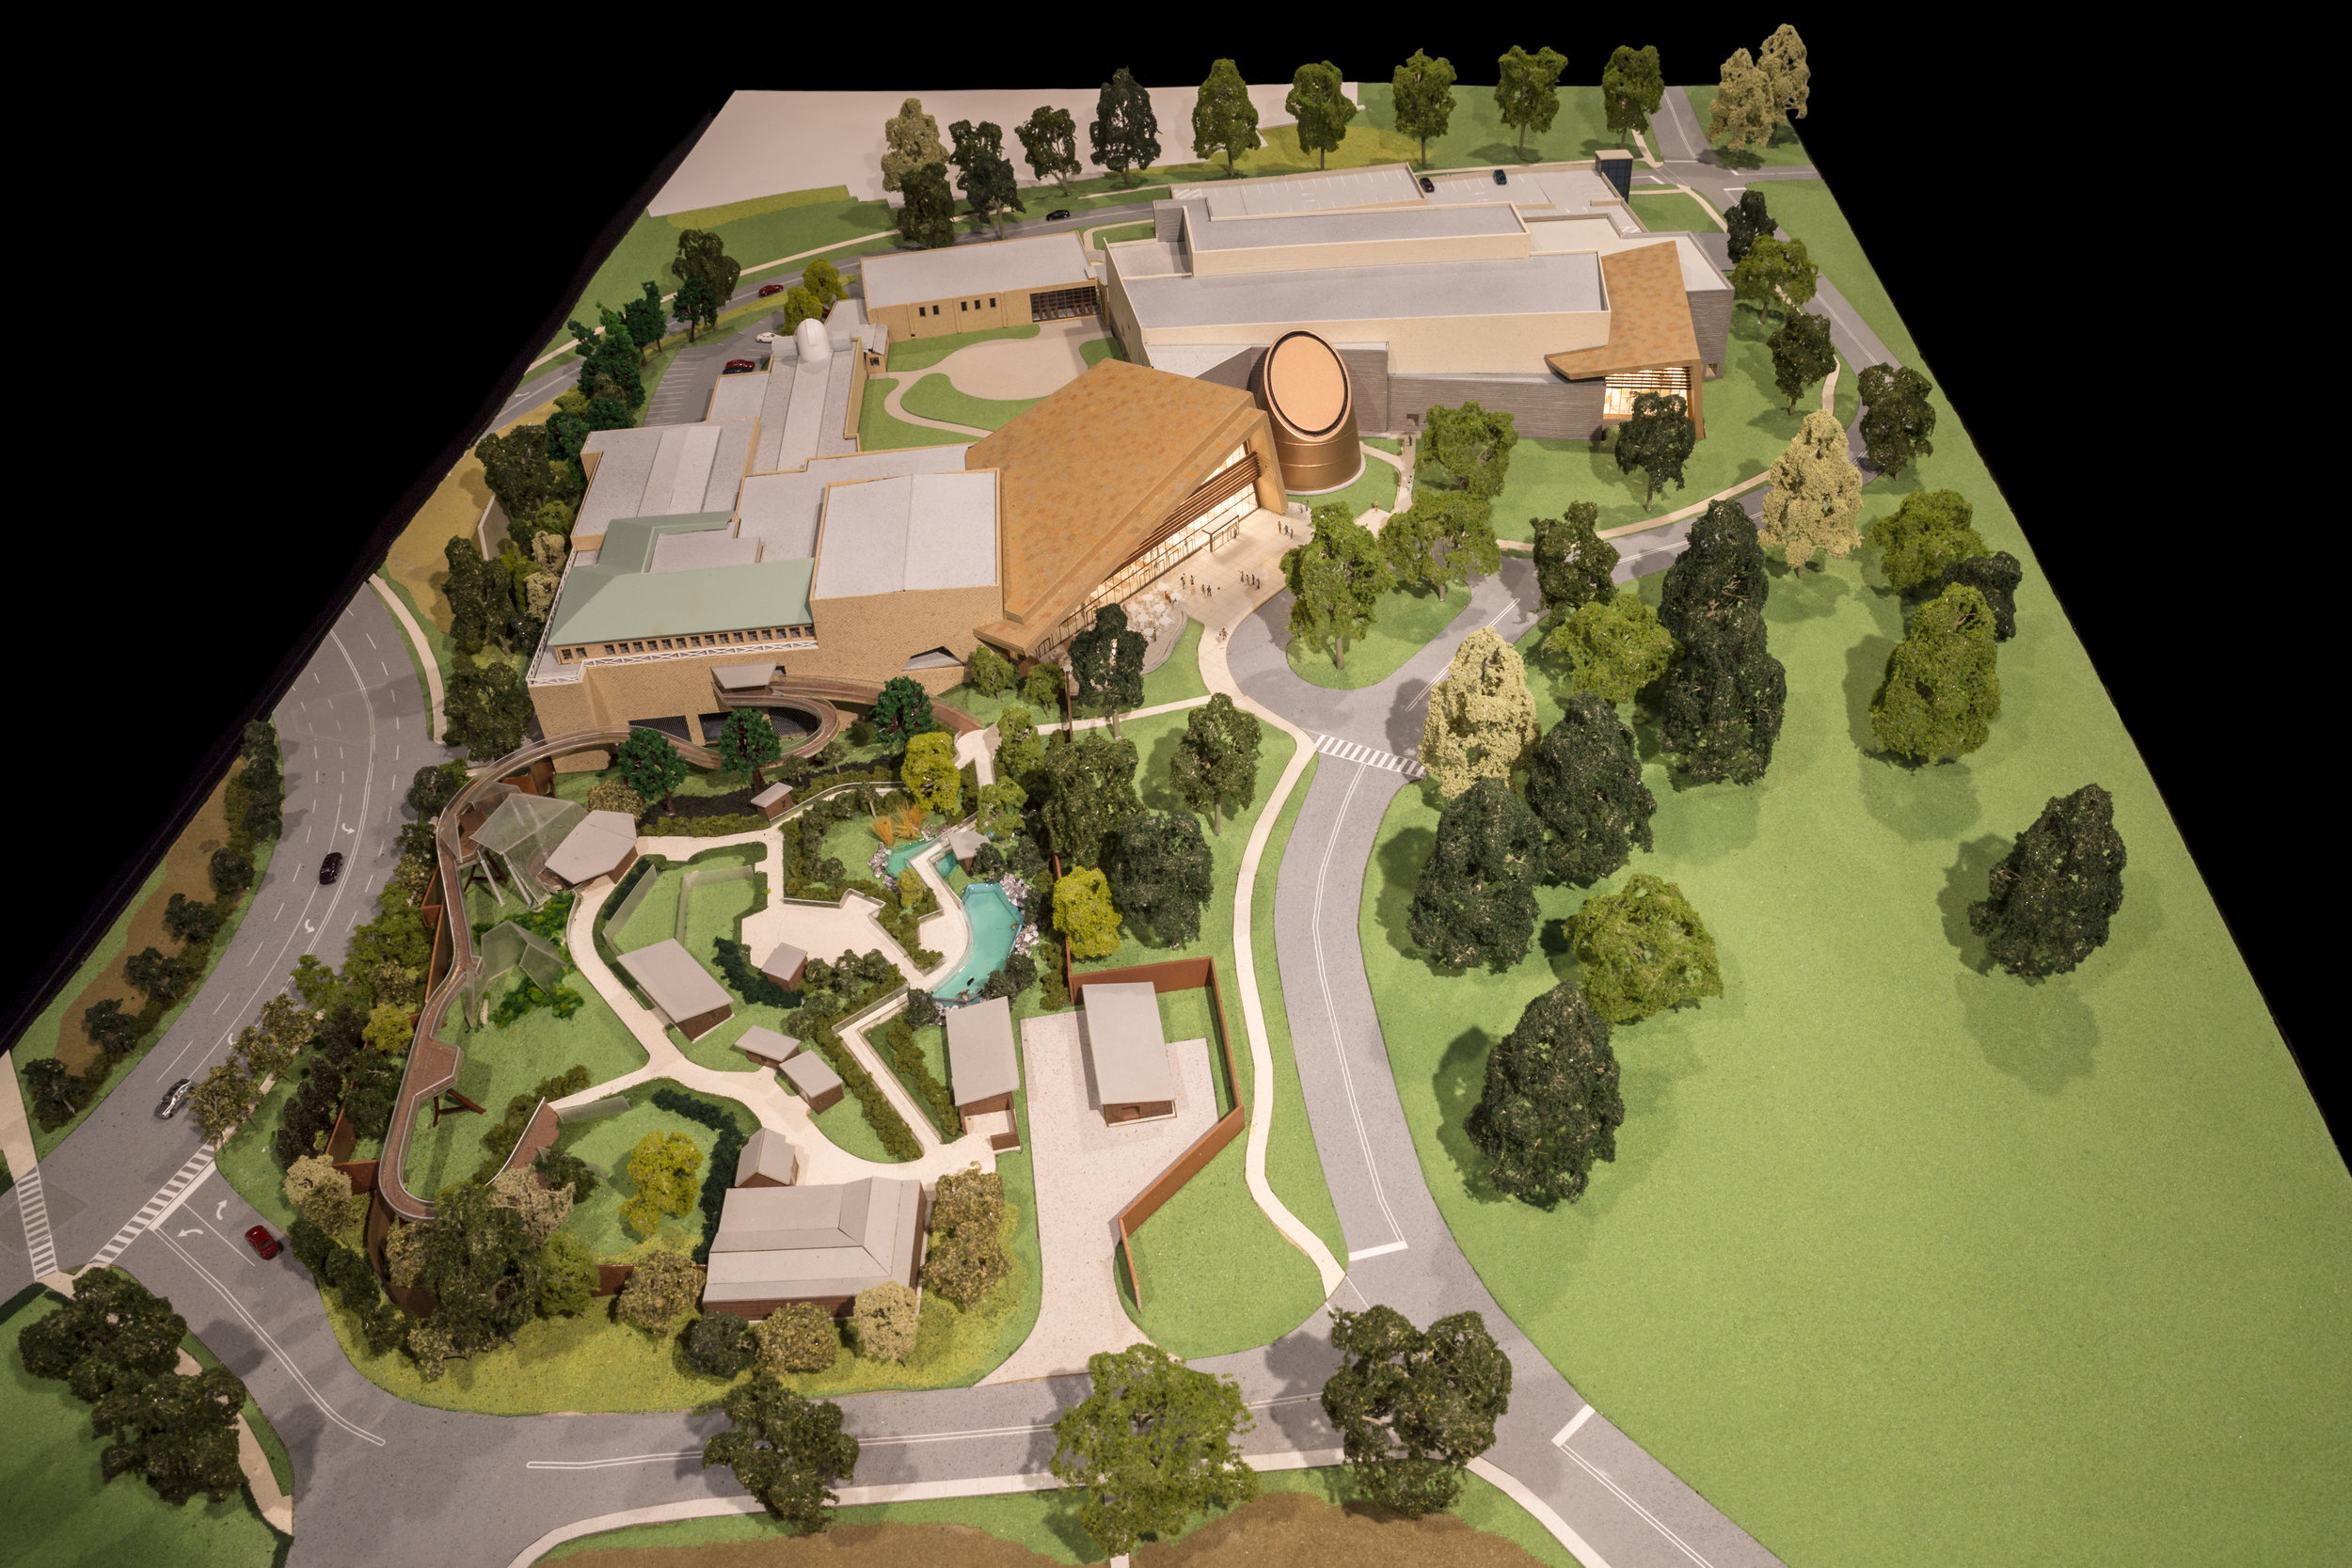 3-D Architectural Model of the Cleveland Museum of Natural History for RMI Designs